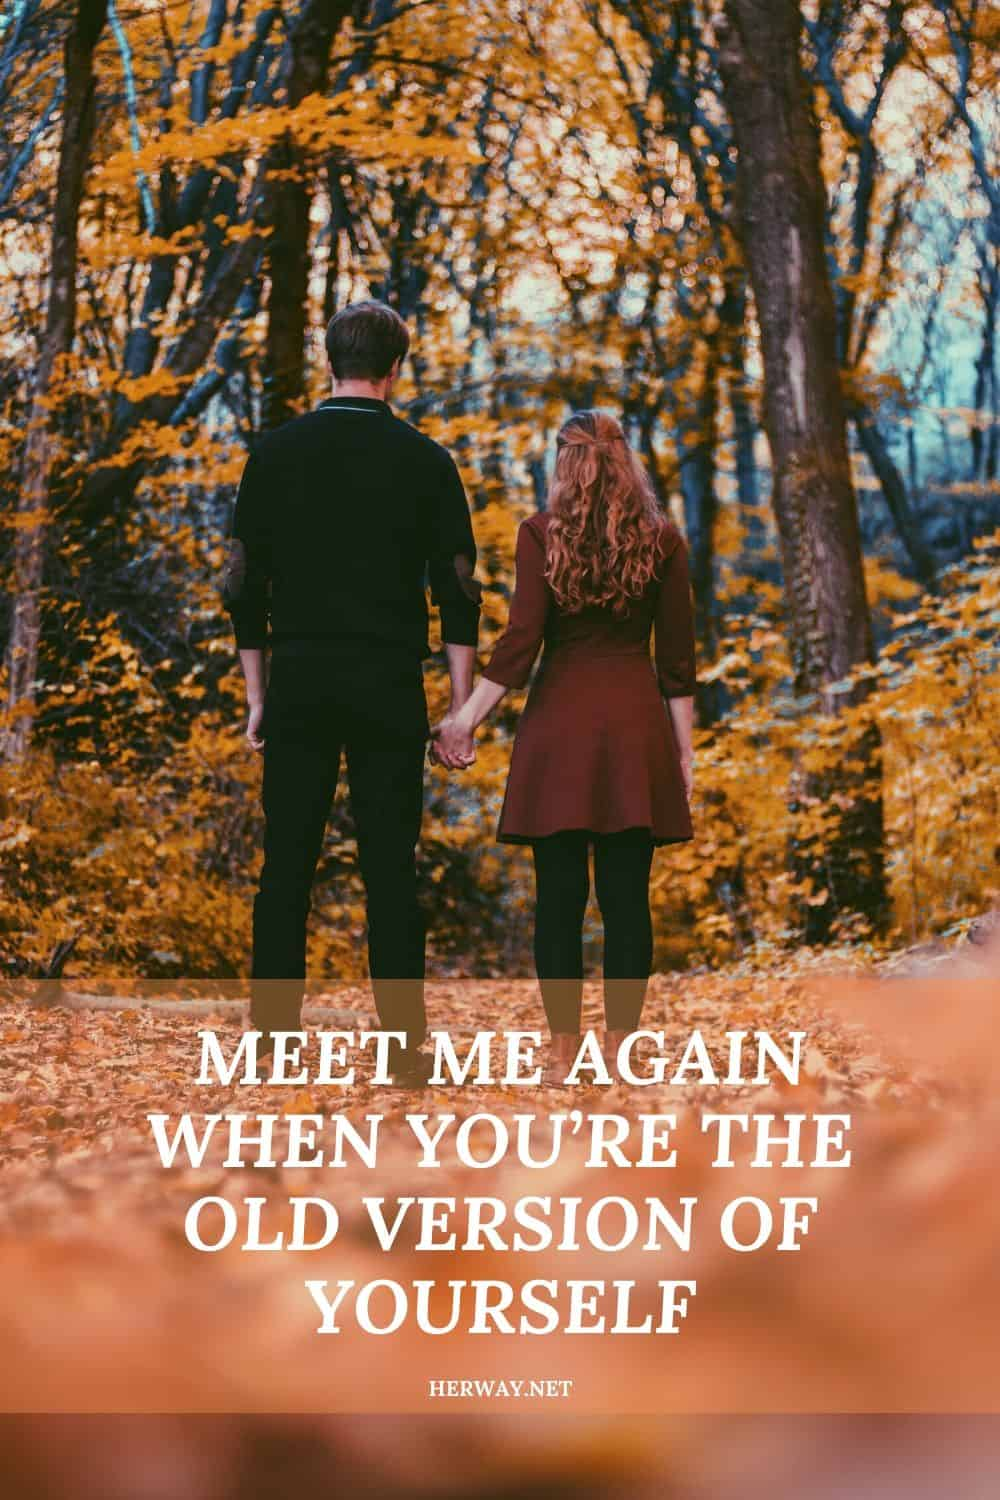 MEET ME AGAIN WHEN YOU'RE THE OLD VERSION OF YOURSELF